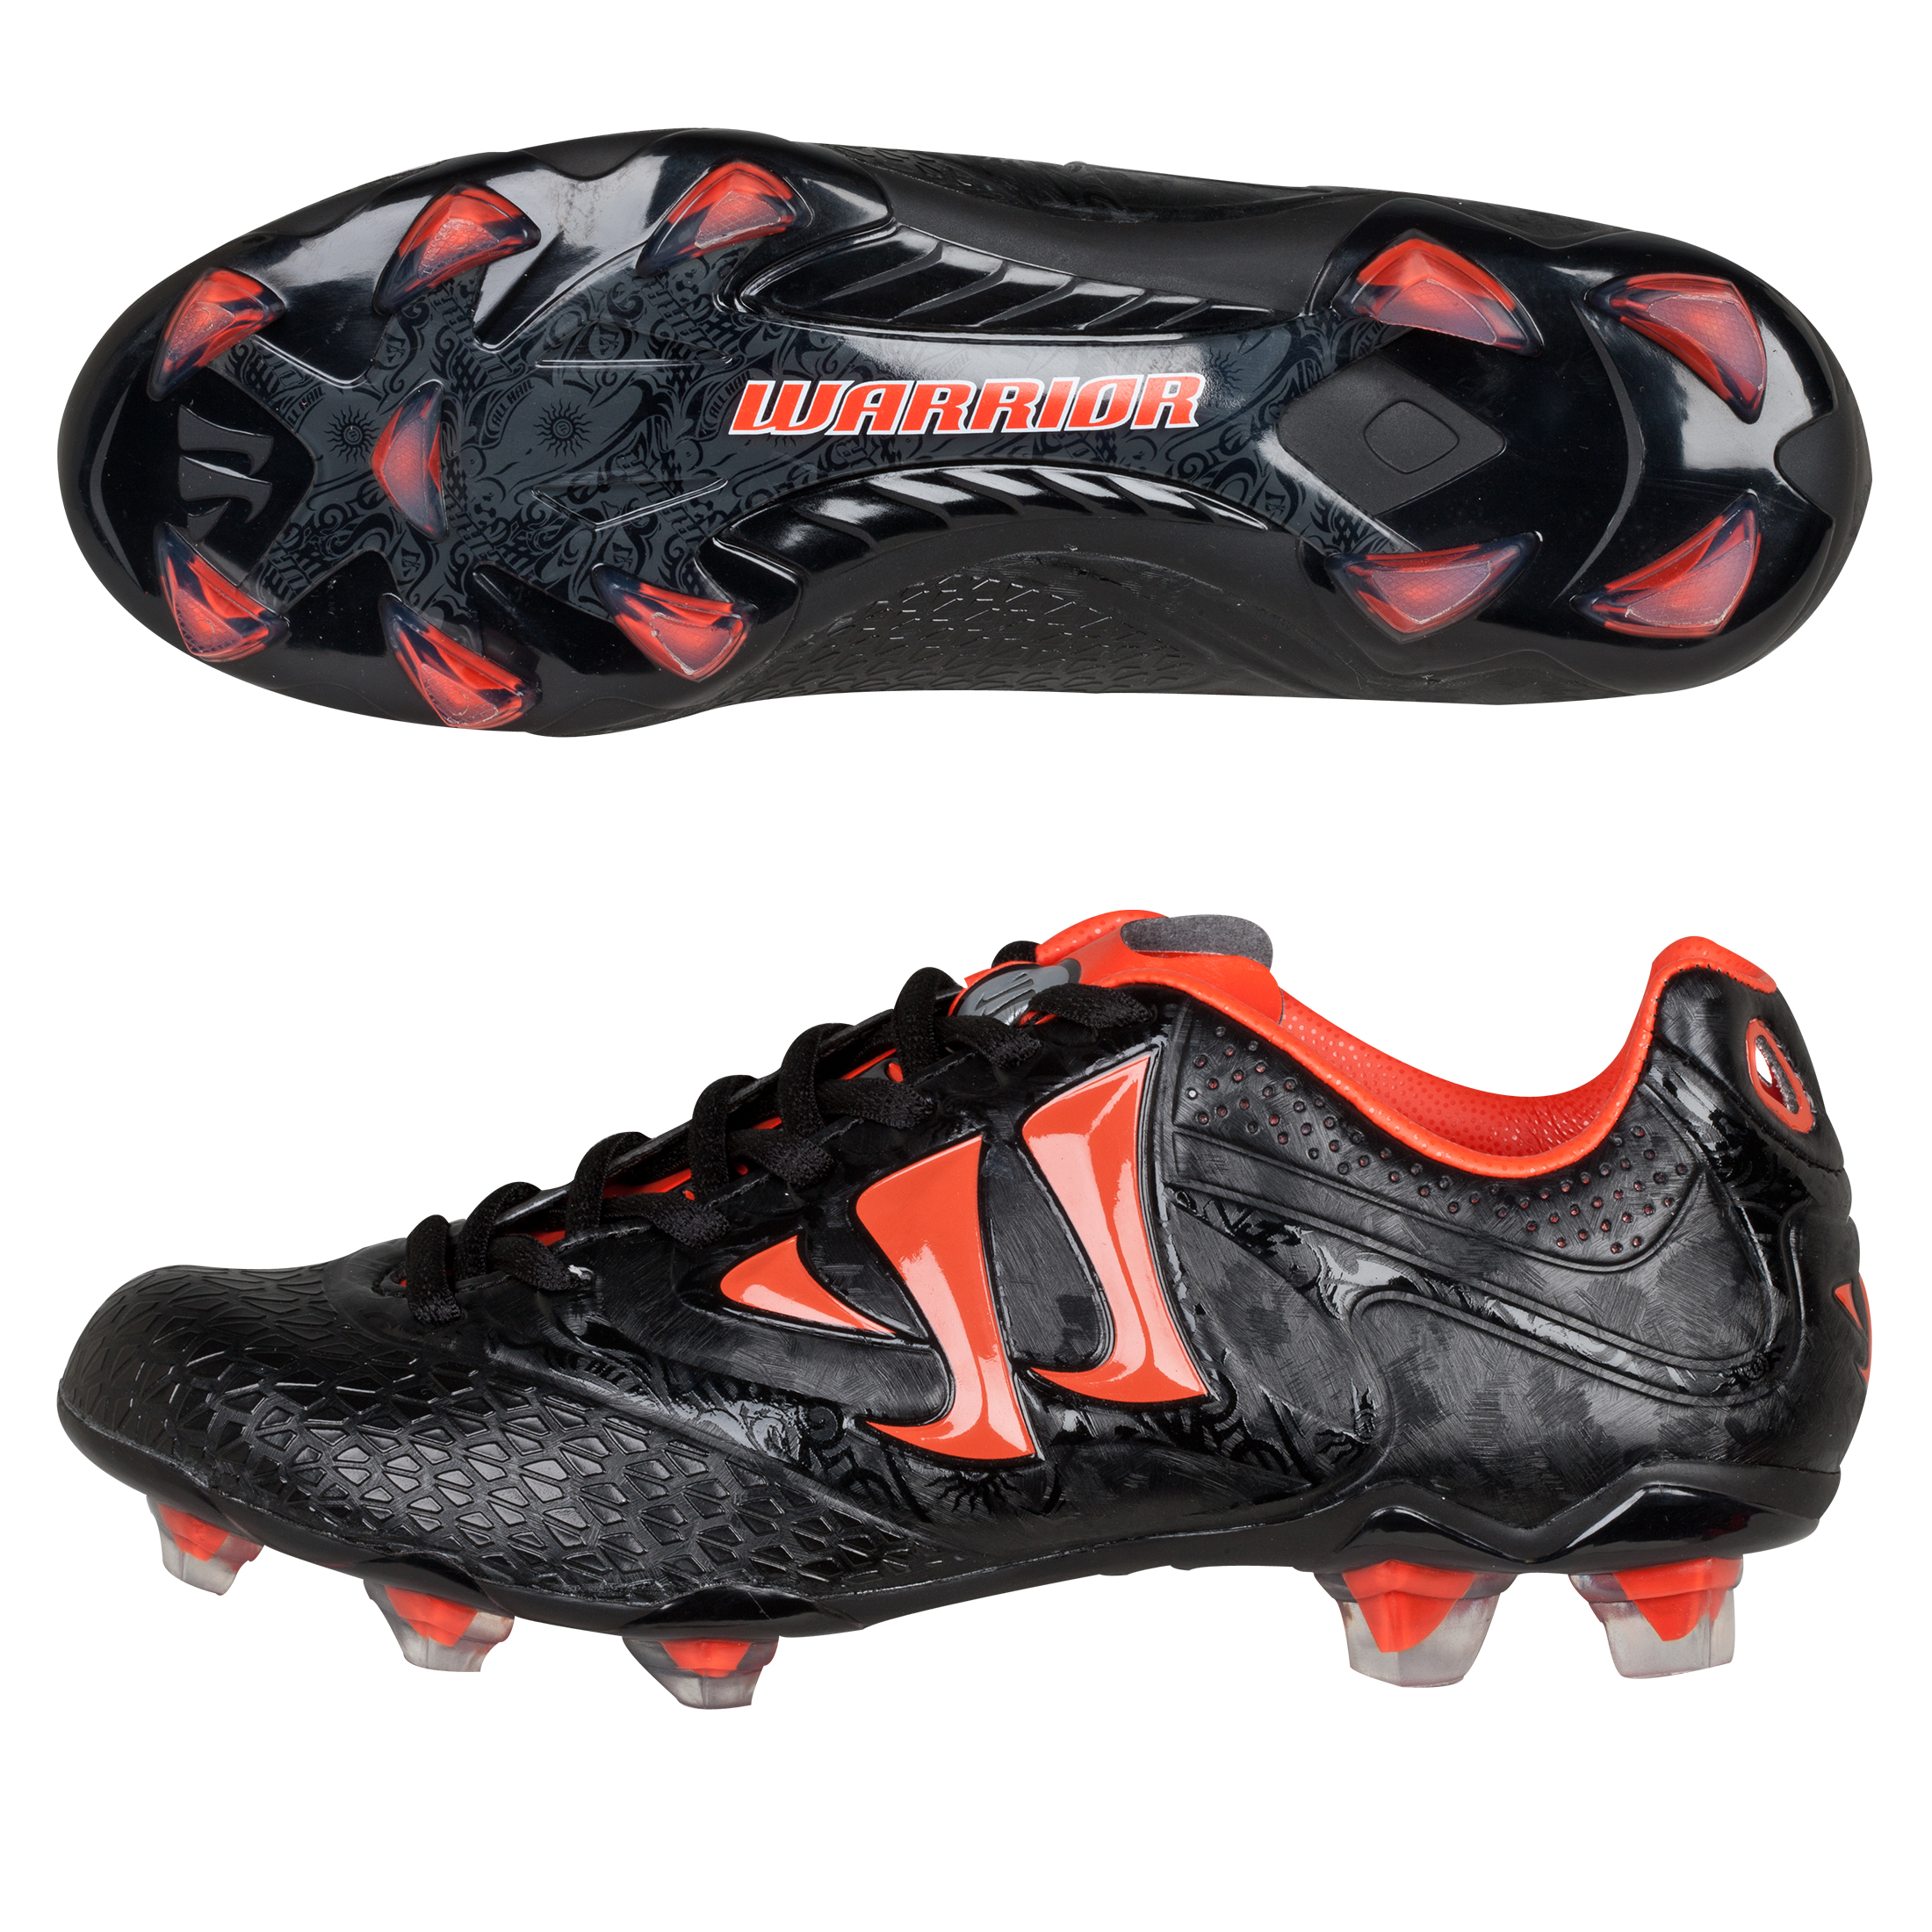 Warrior Sports Skreamer Combat Firm Ground Football Boots